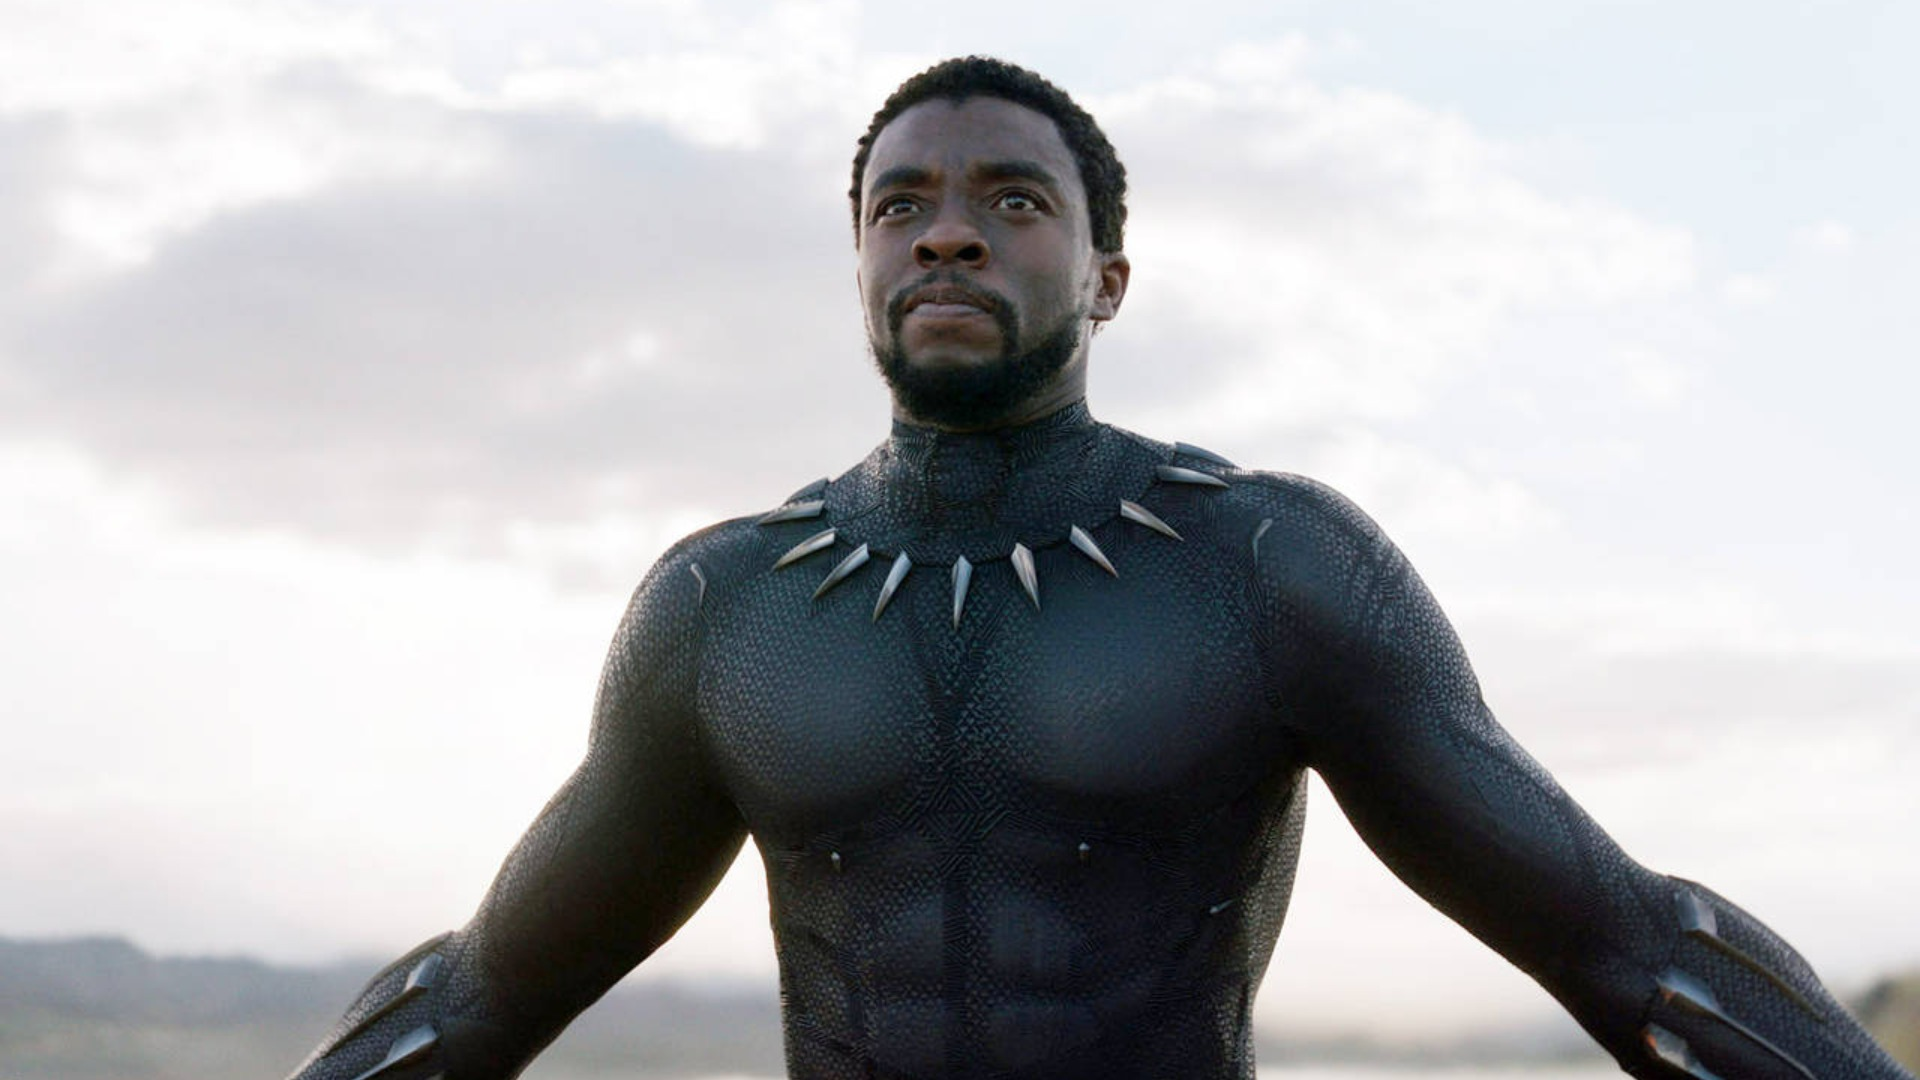 Avengers Actors Lead Tributes To Black Panther Star Chadwick Boseman Who Has Died Aged 43 Gamesradar